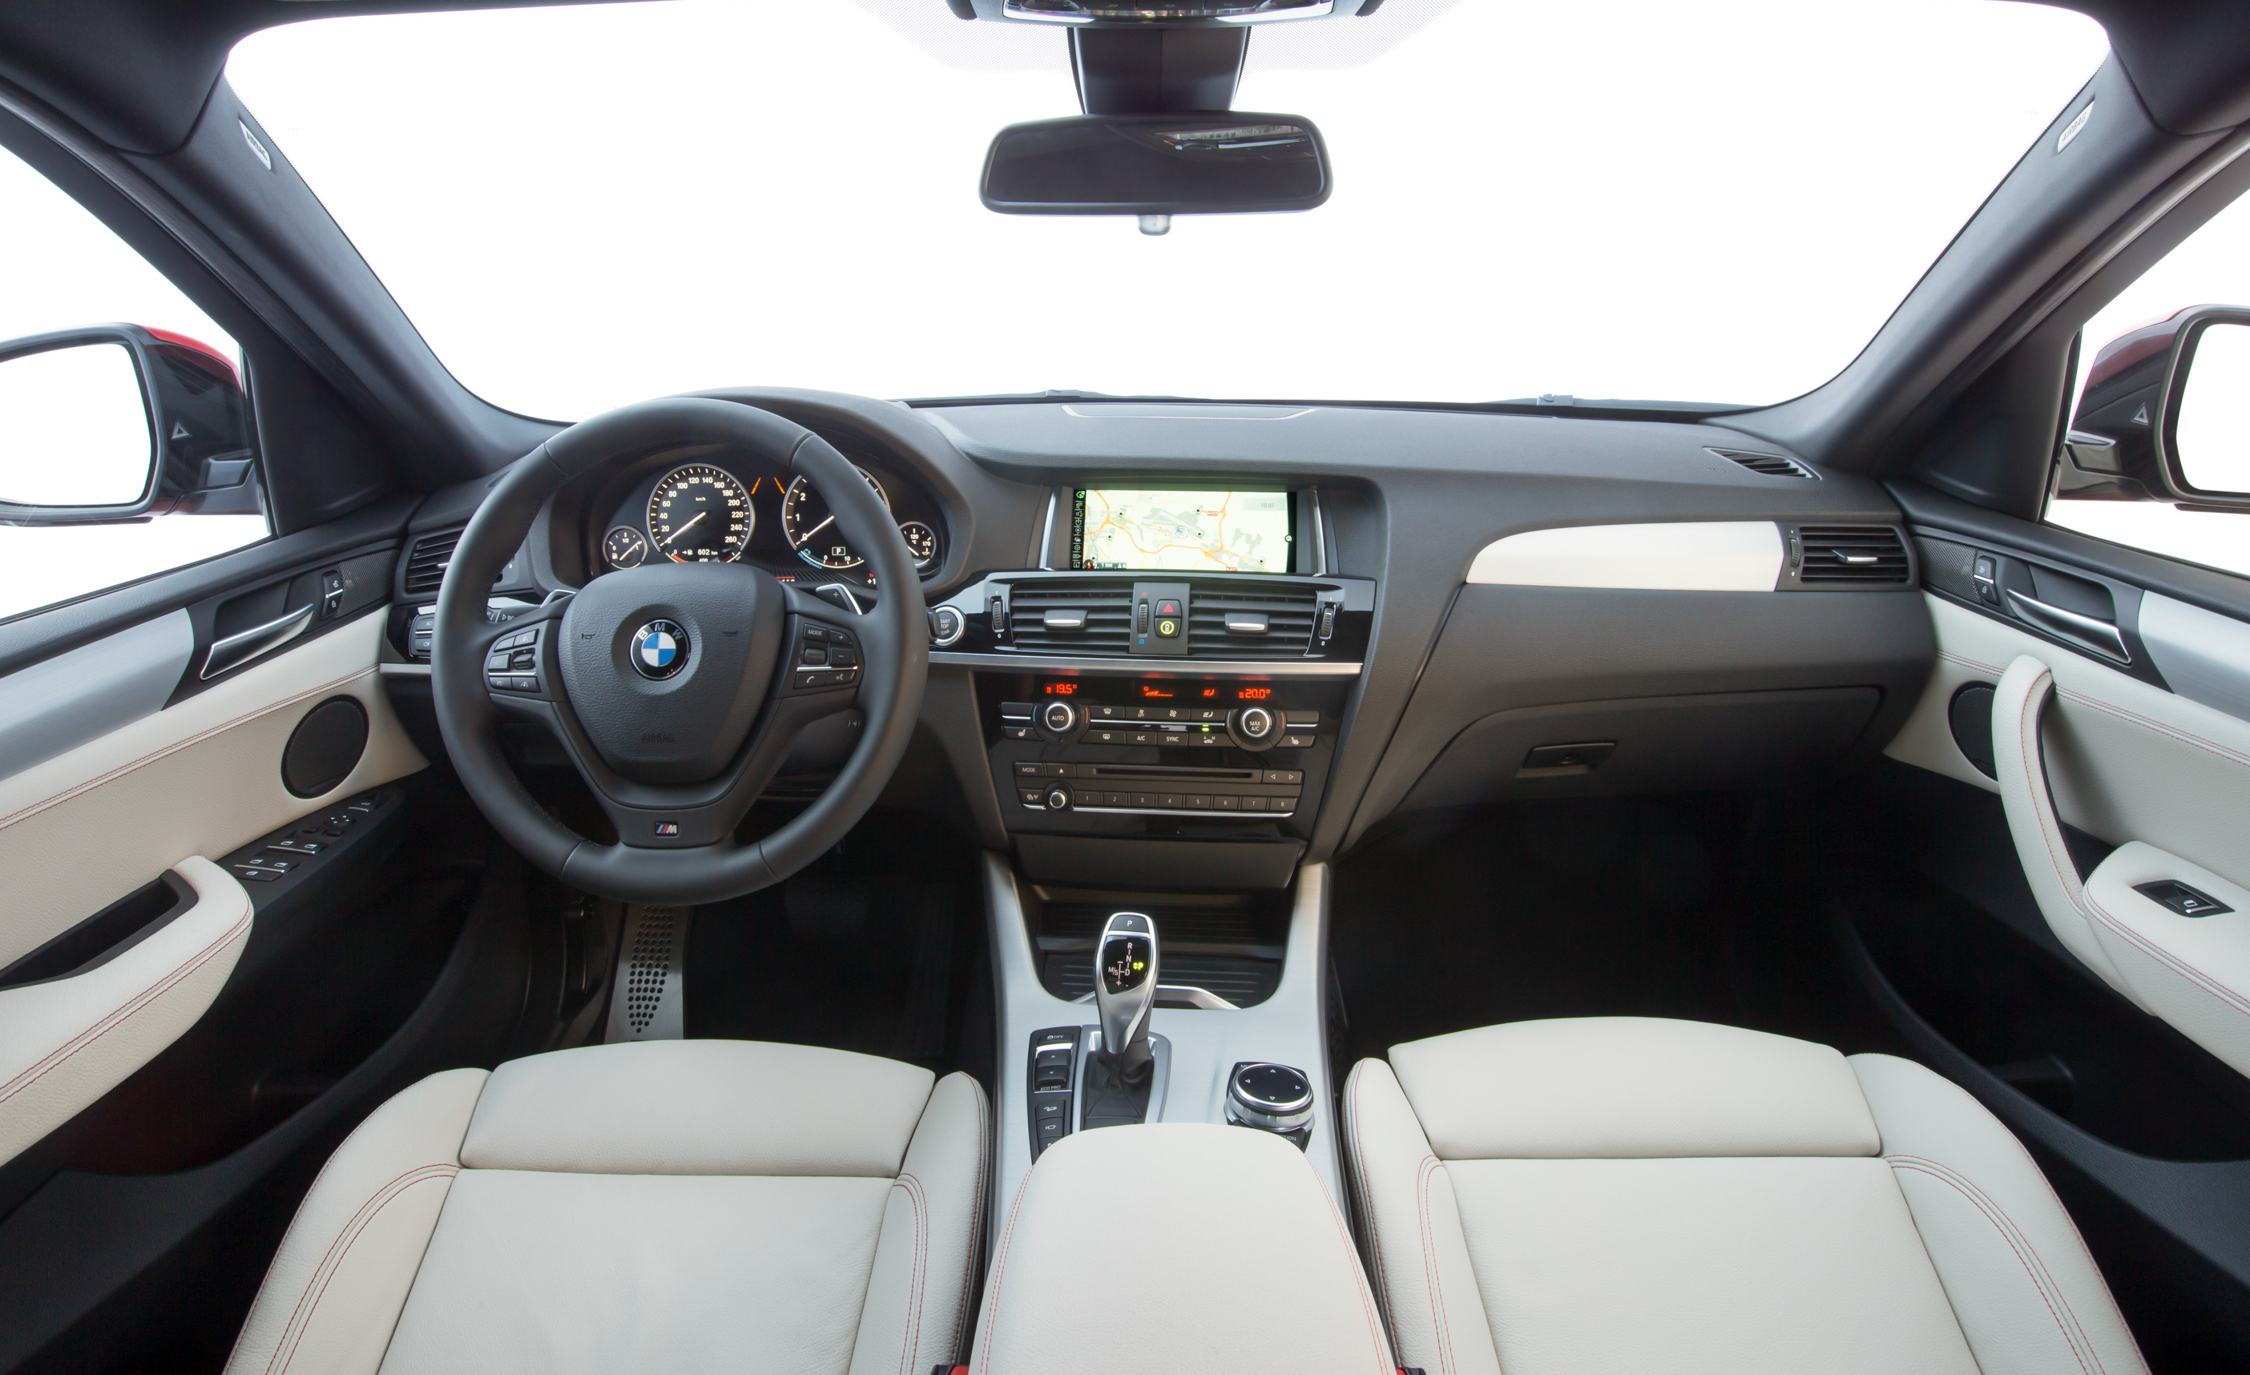 2015 BMW X4 XDrive35i Interior (Photo 13 of 14)